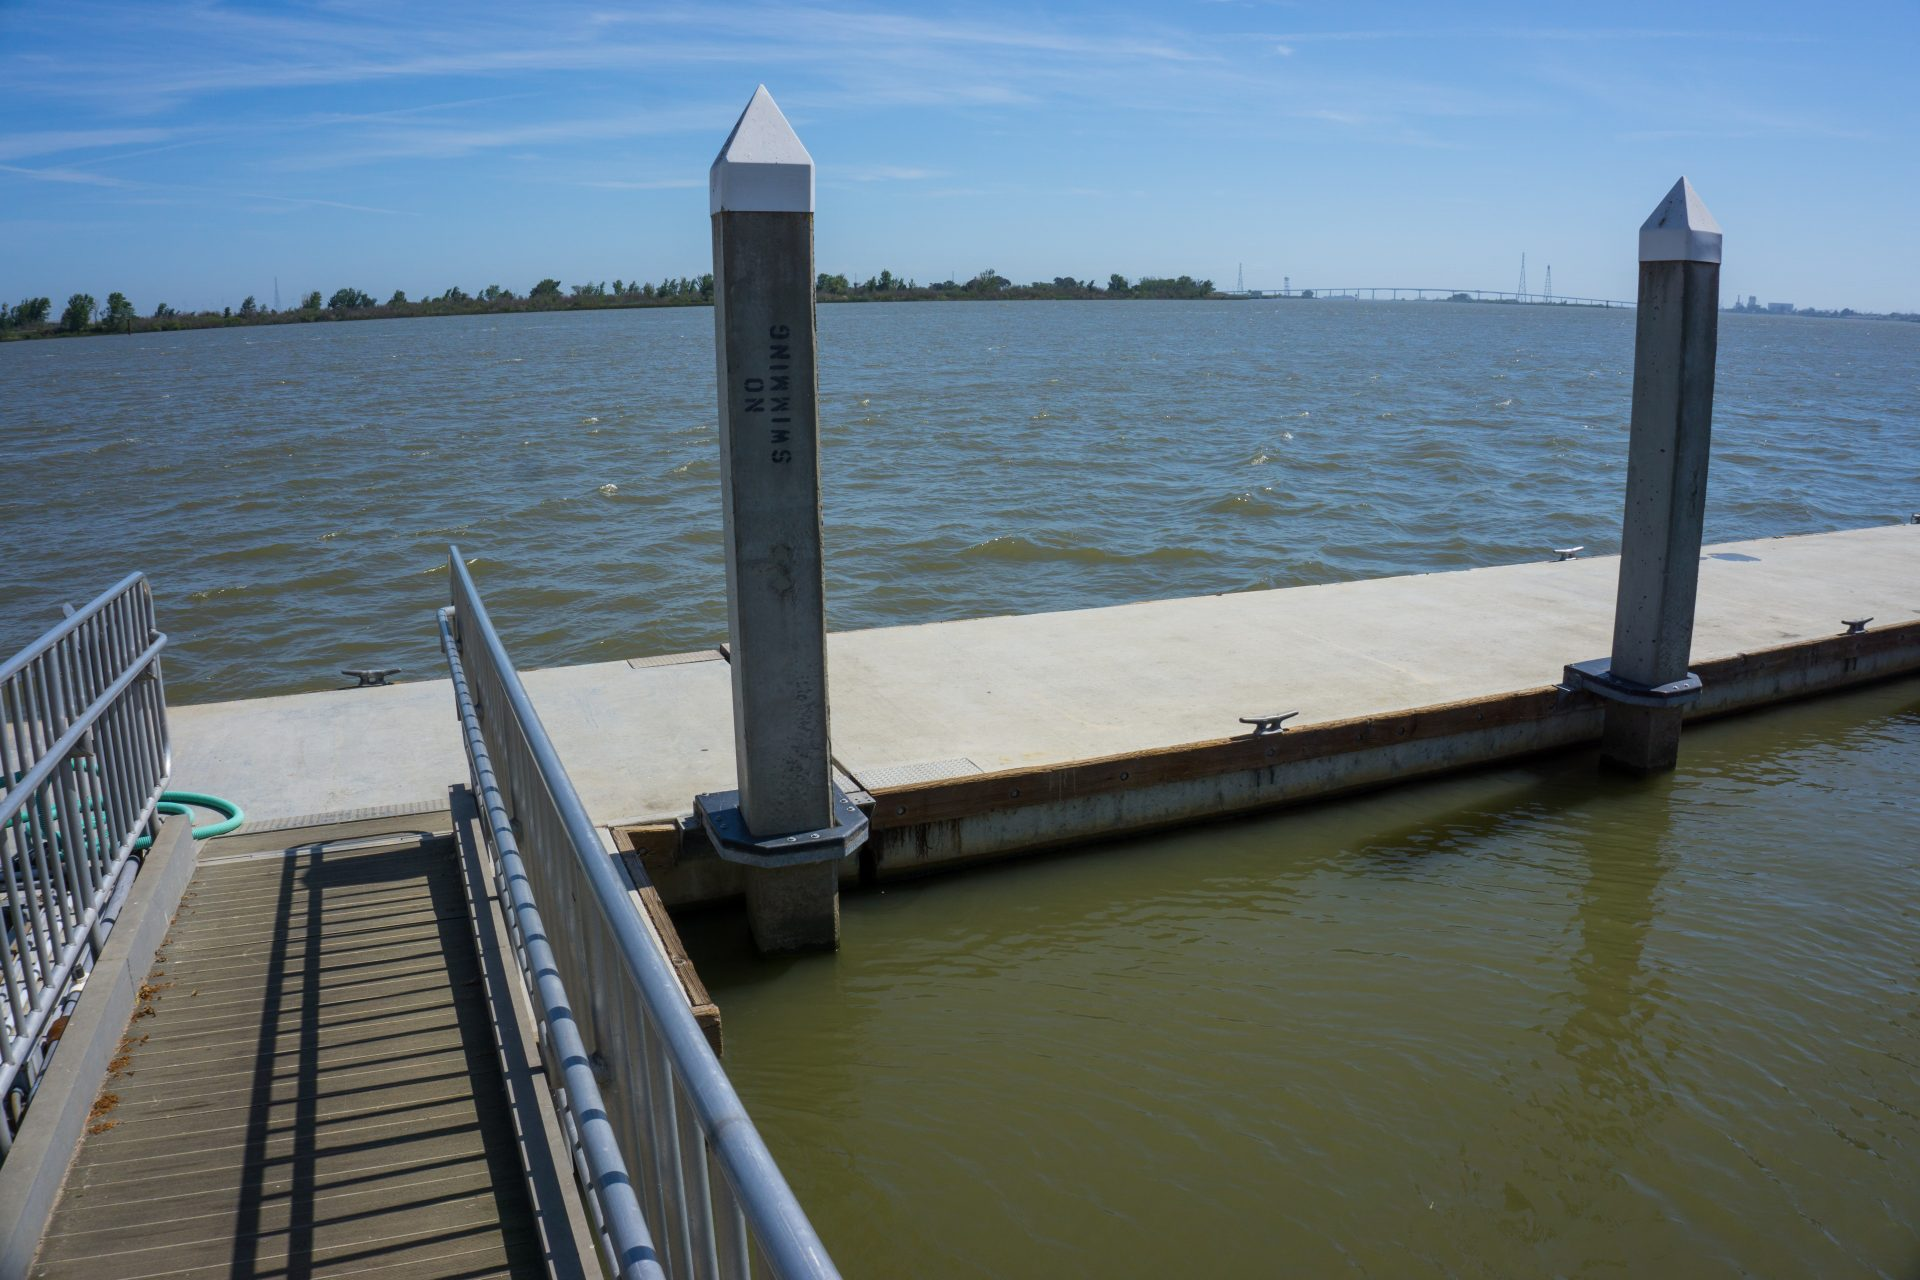 walkway to floating dock attached to two pointed columns